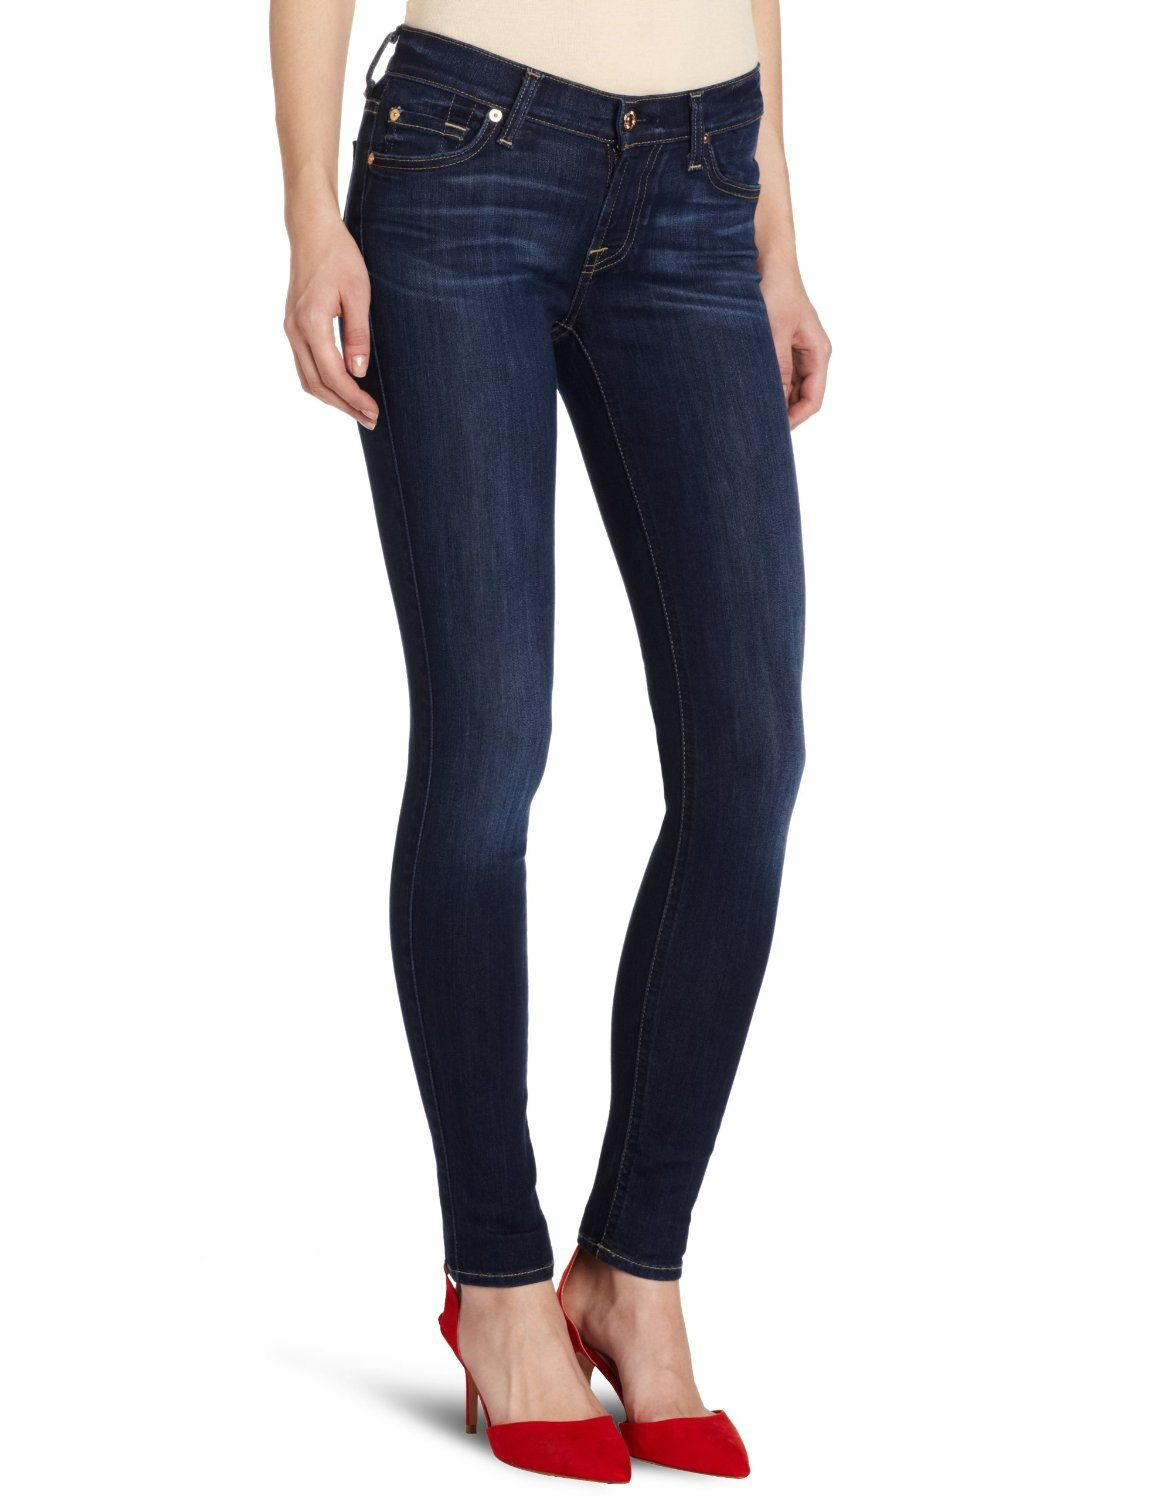 7 For All Mankind Womens The Skinny Jean In Sophisticated Siren